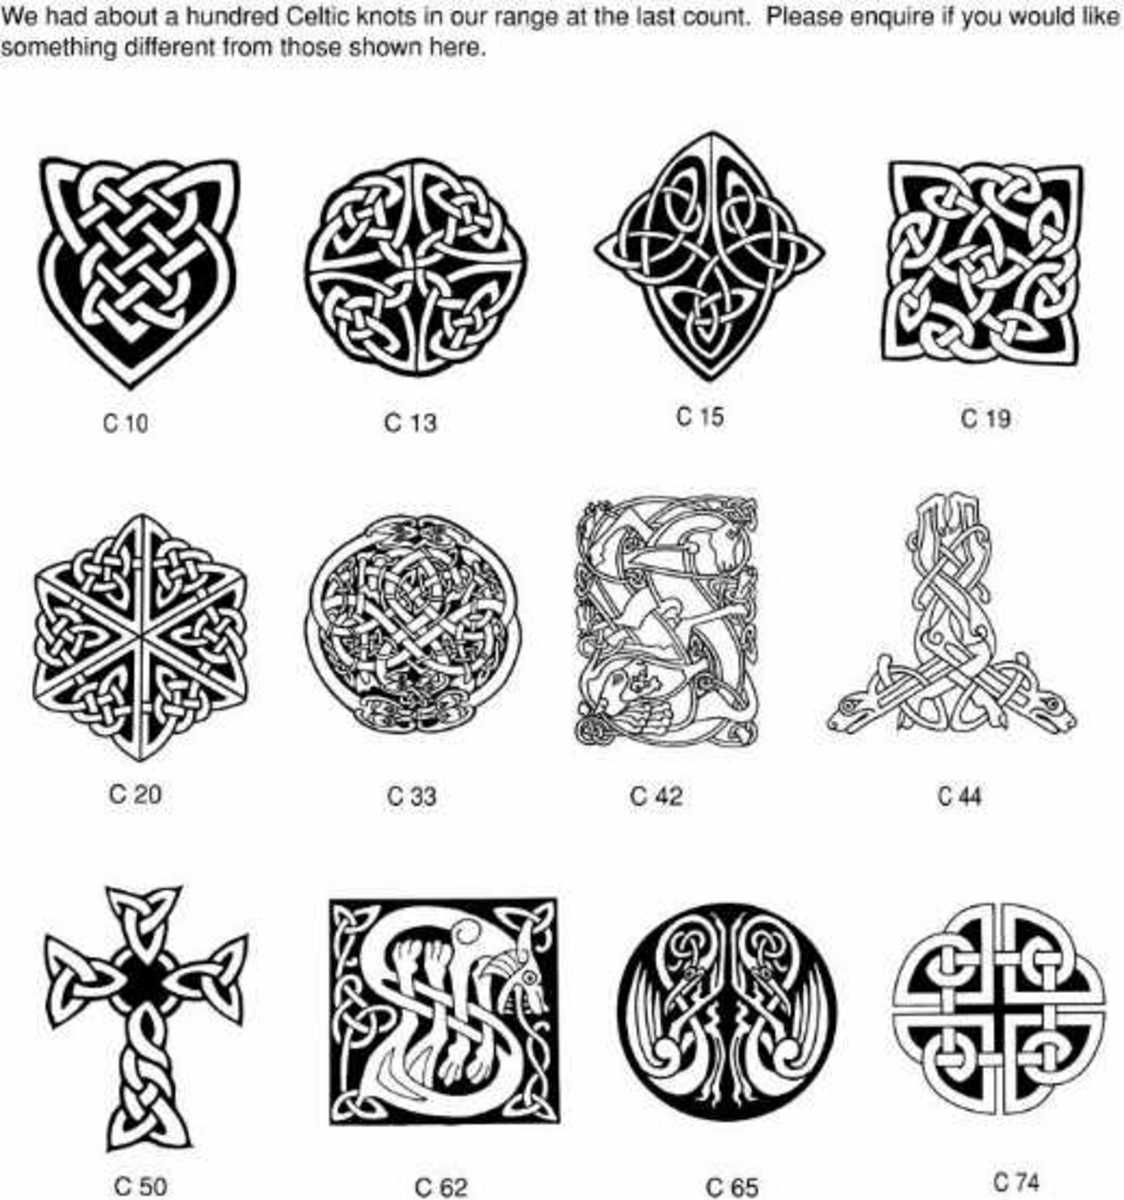 Scottish Tattoos And Meanings: History Of Celtic Design Tattoos